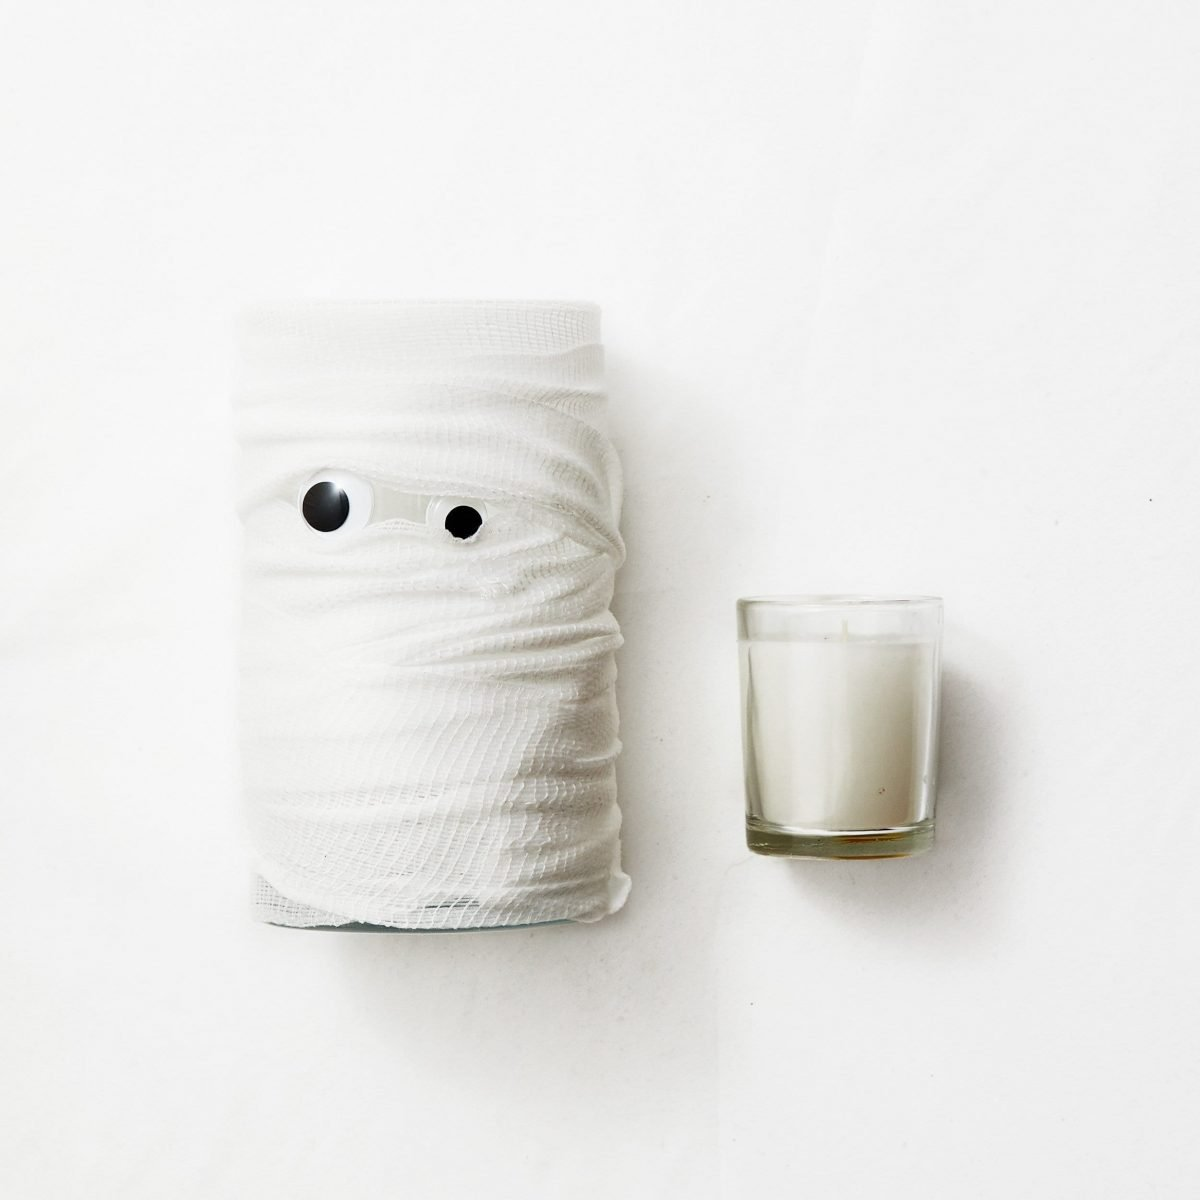 Darcy Miller, Easy, Halloween, Decor, Googly Eye, Candle, Votive, Vase, Spooky, Cute, Craft, Kids Craft